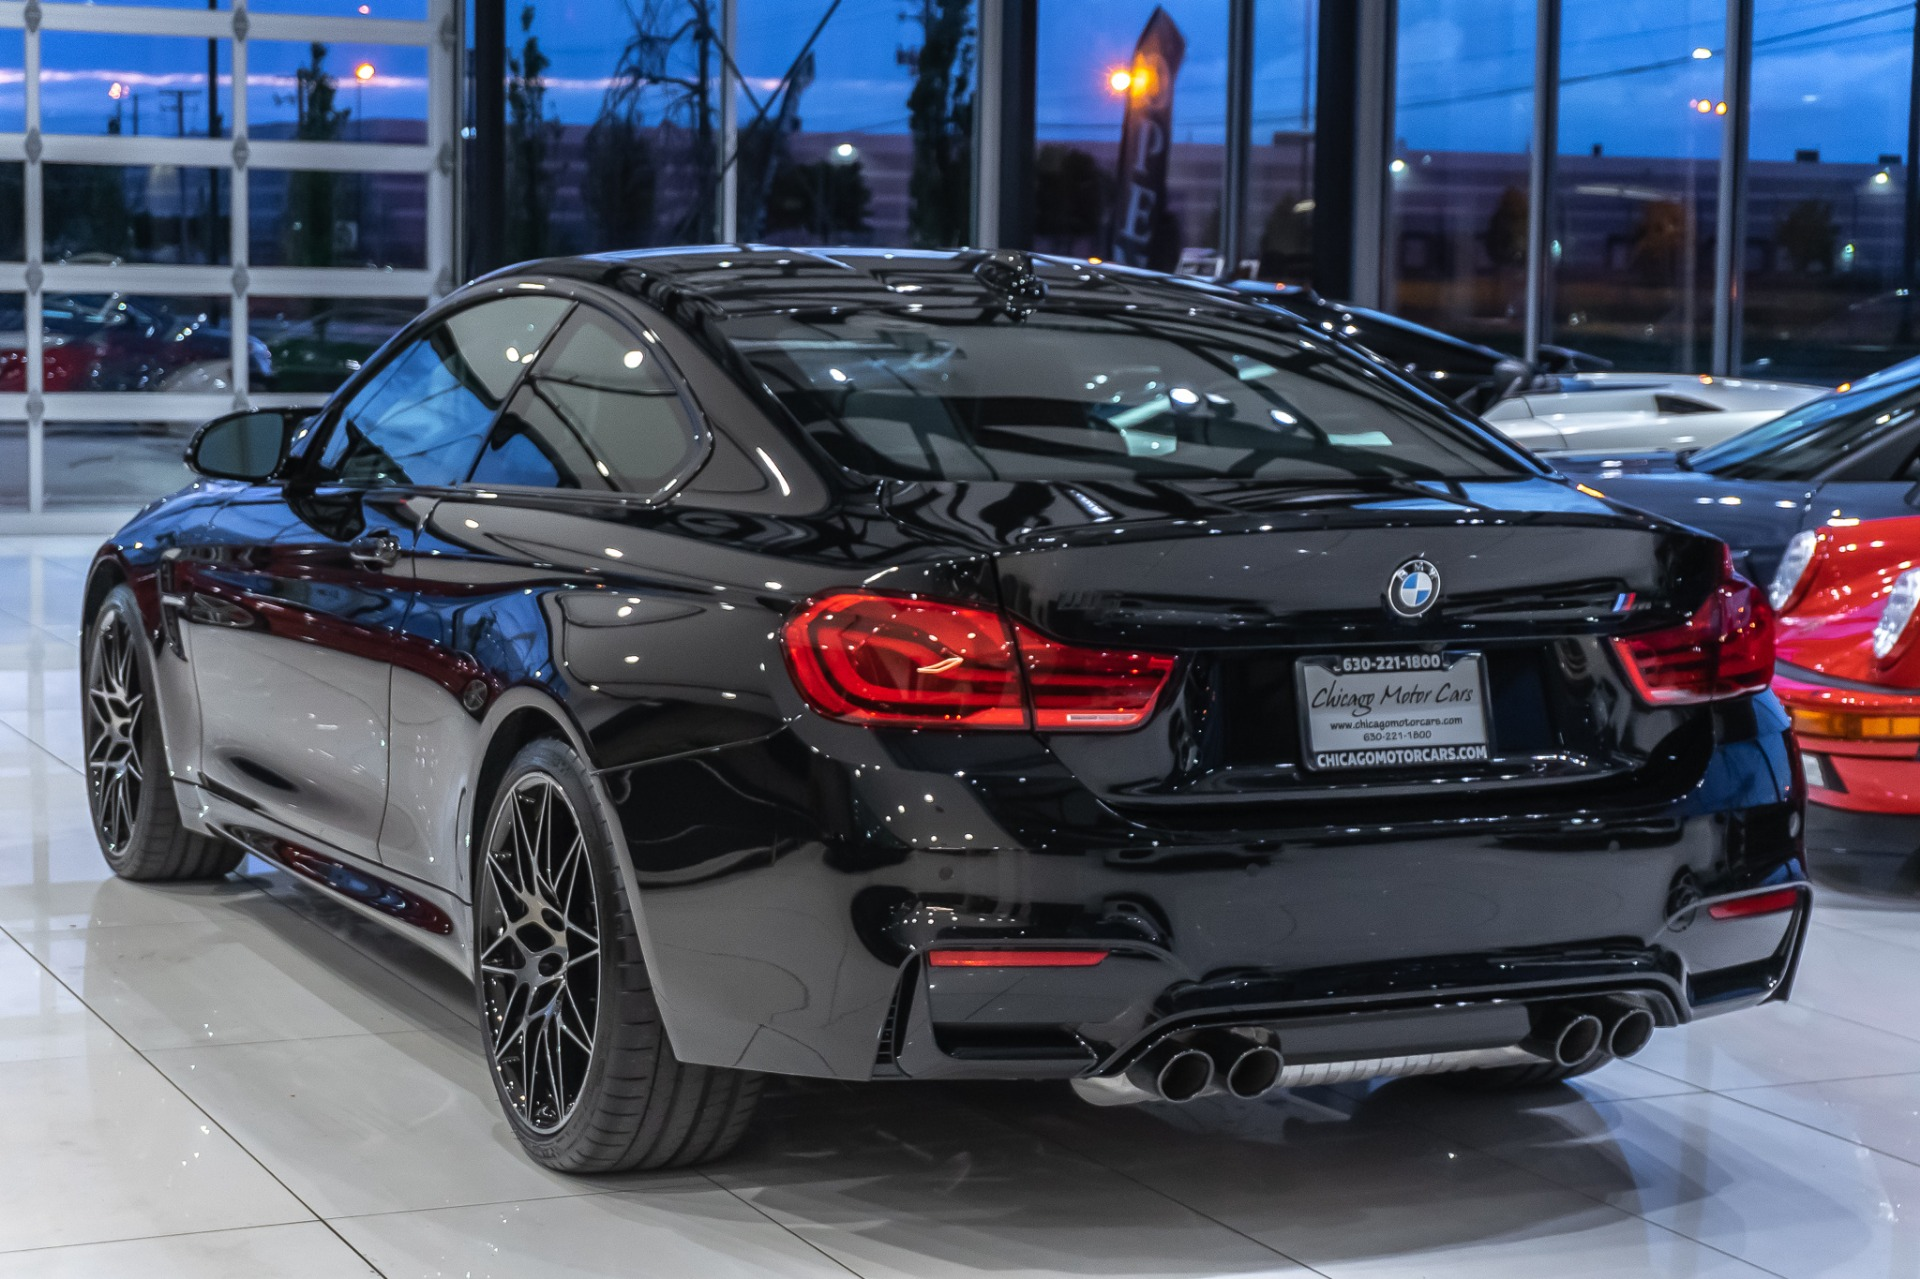 Used 2019 Bmw M4 Competition Coupe Only 391 Miles Manual Transmission For Sale Special Pricing Chicago Motor Cars Stock 15959